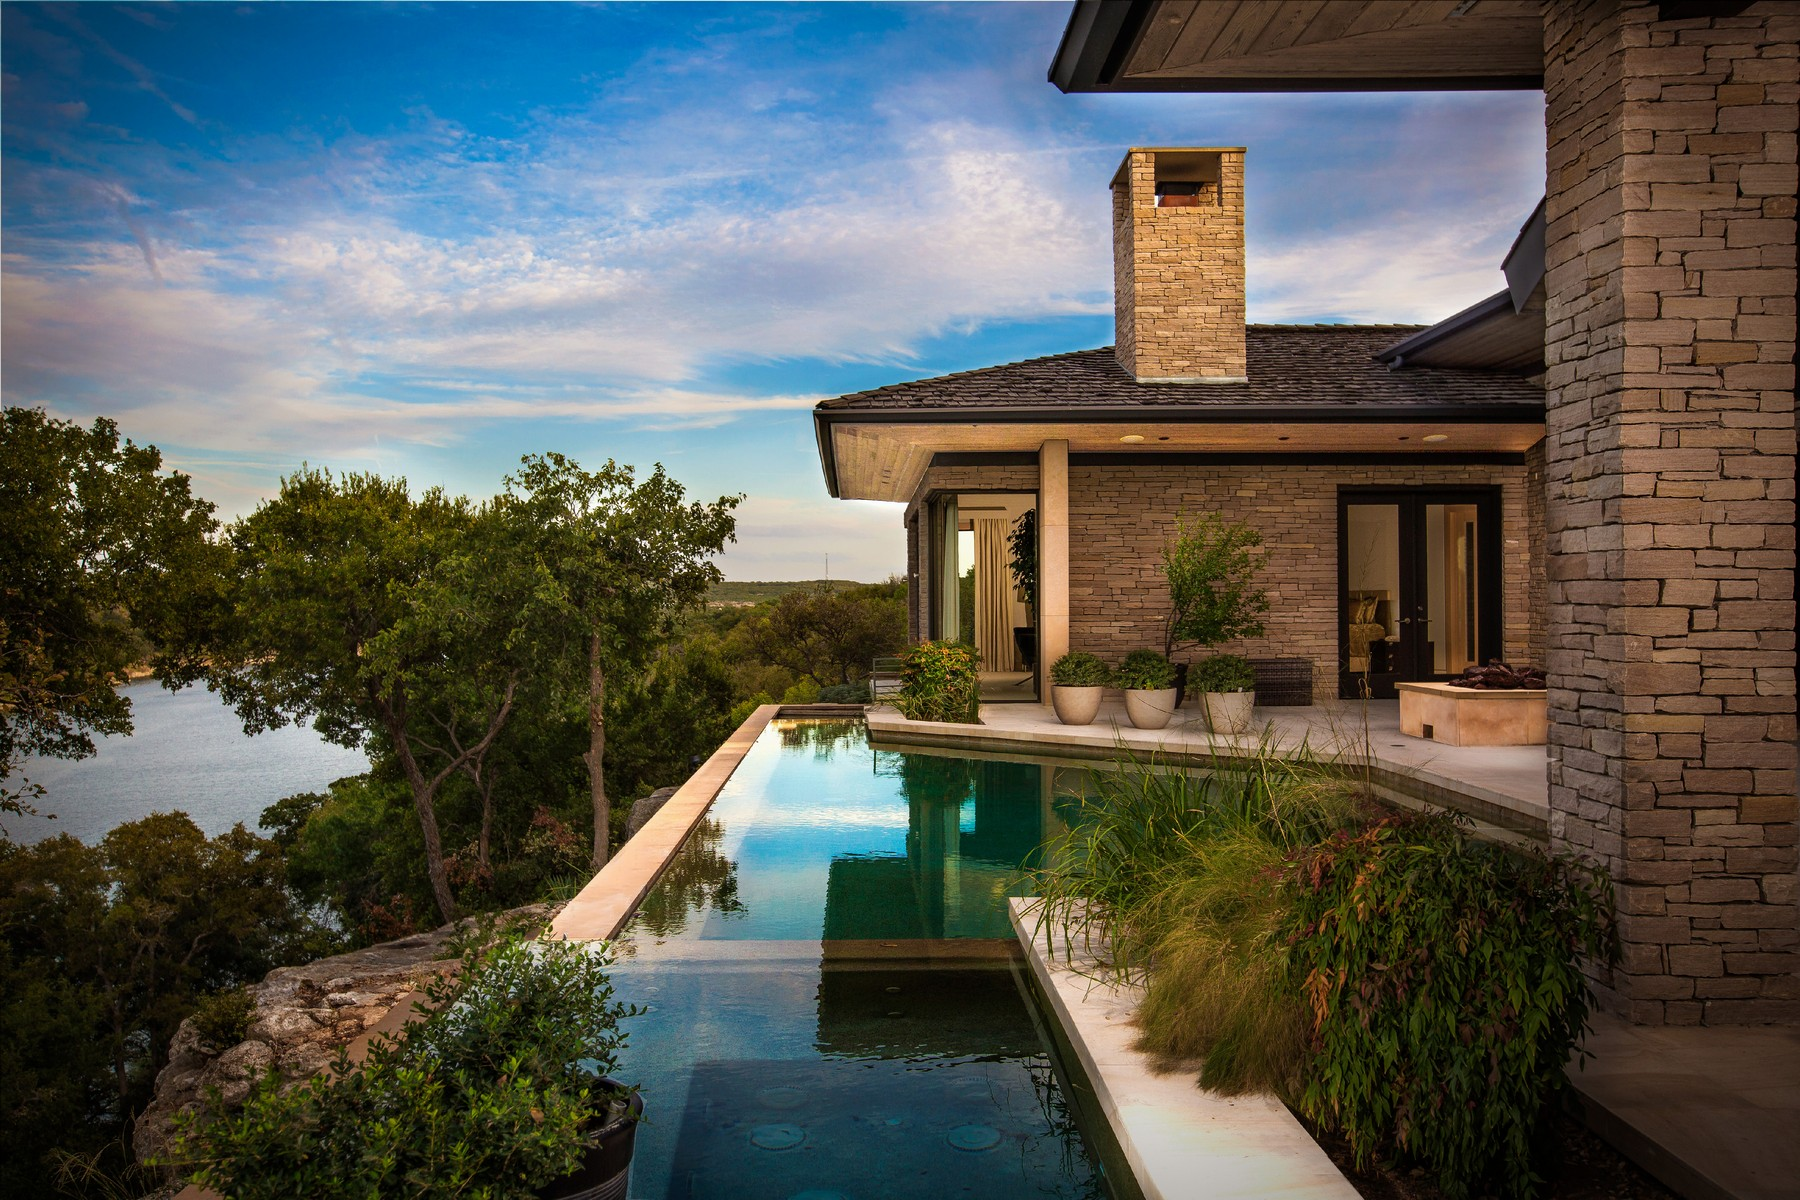 Single Family Home for Sale at ARCHITECTURAL MASTERPIECE 805 Rivercliff Rd Spicewood, Texas 78669 United States